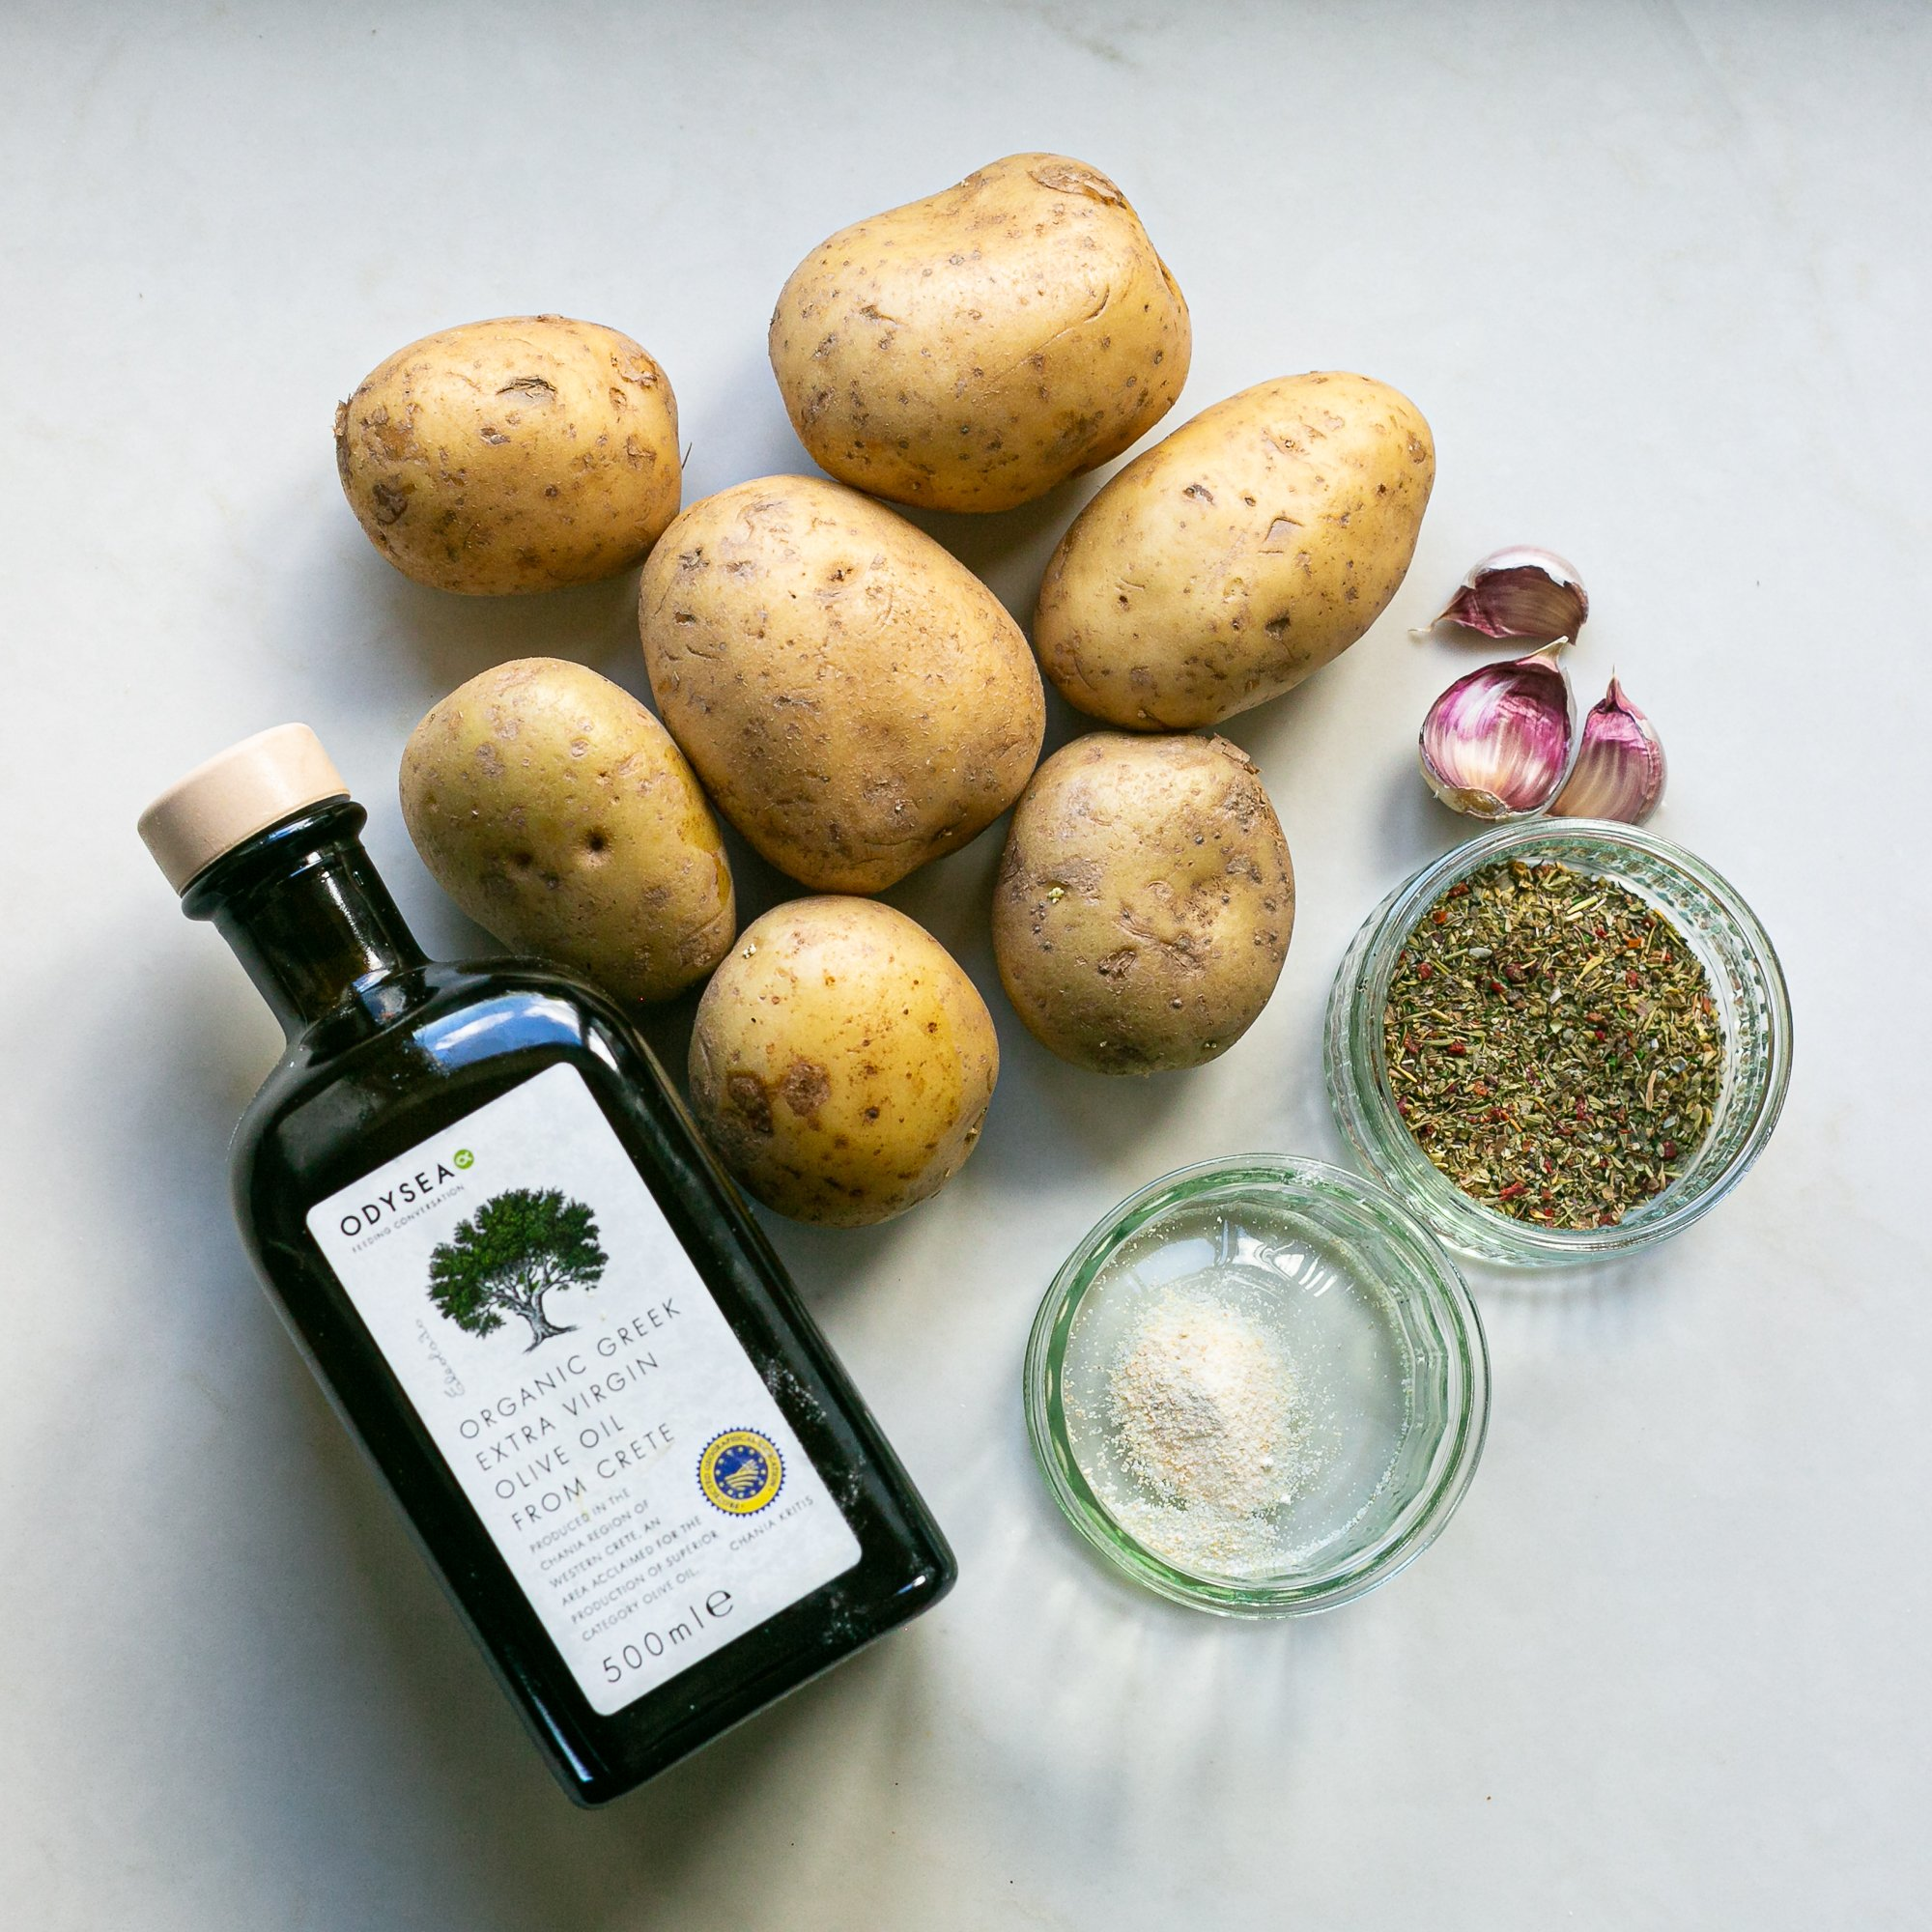 ingredients for easy homemade oven chips